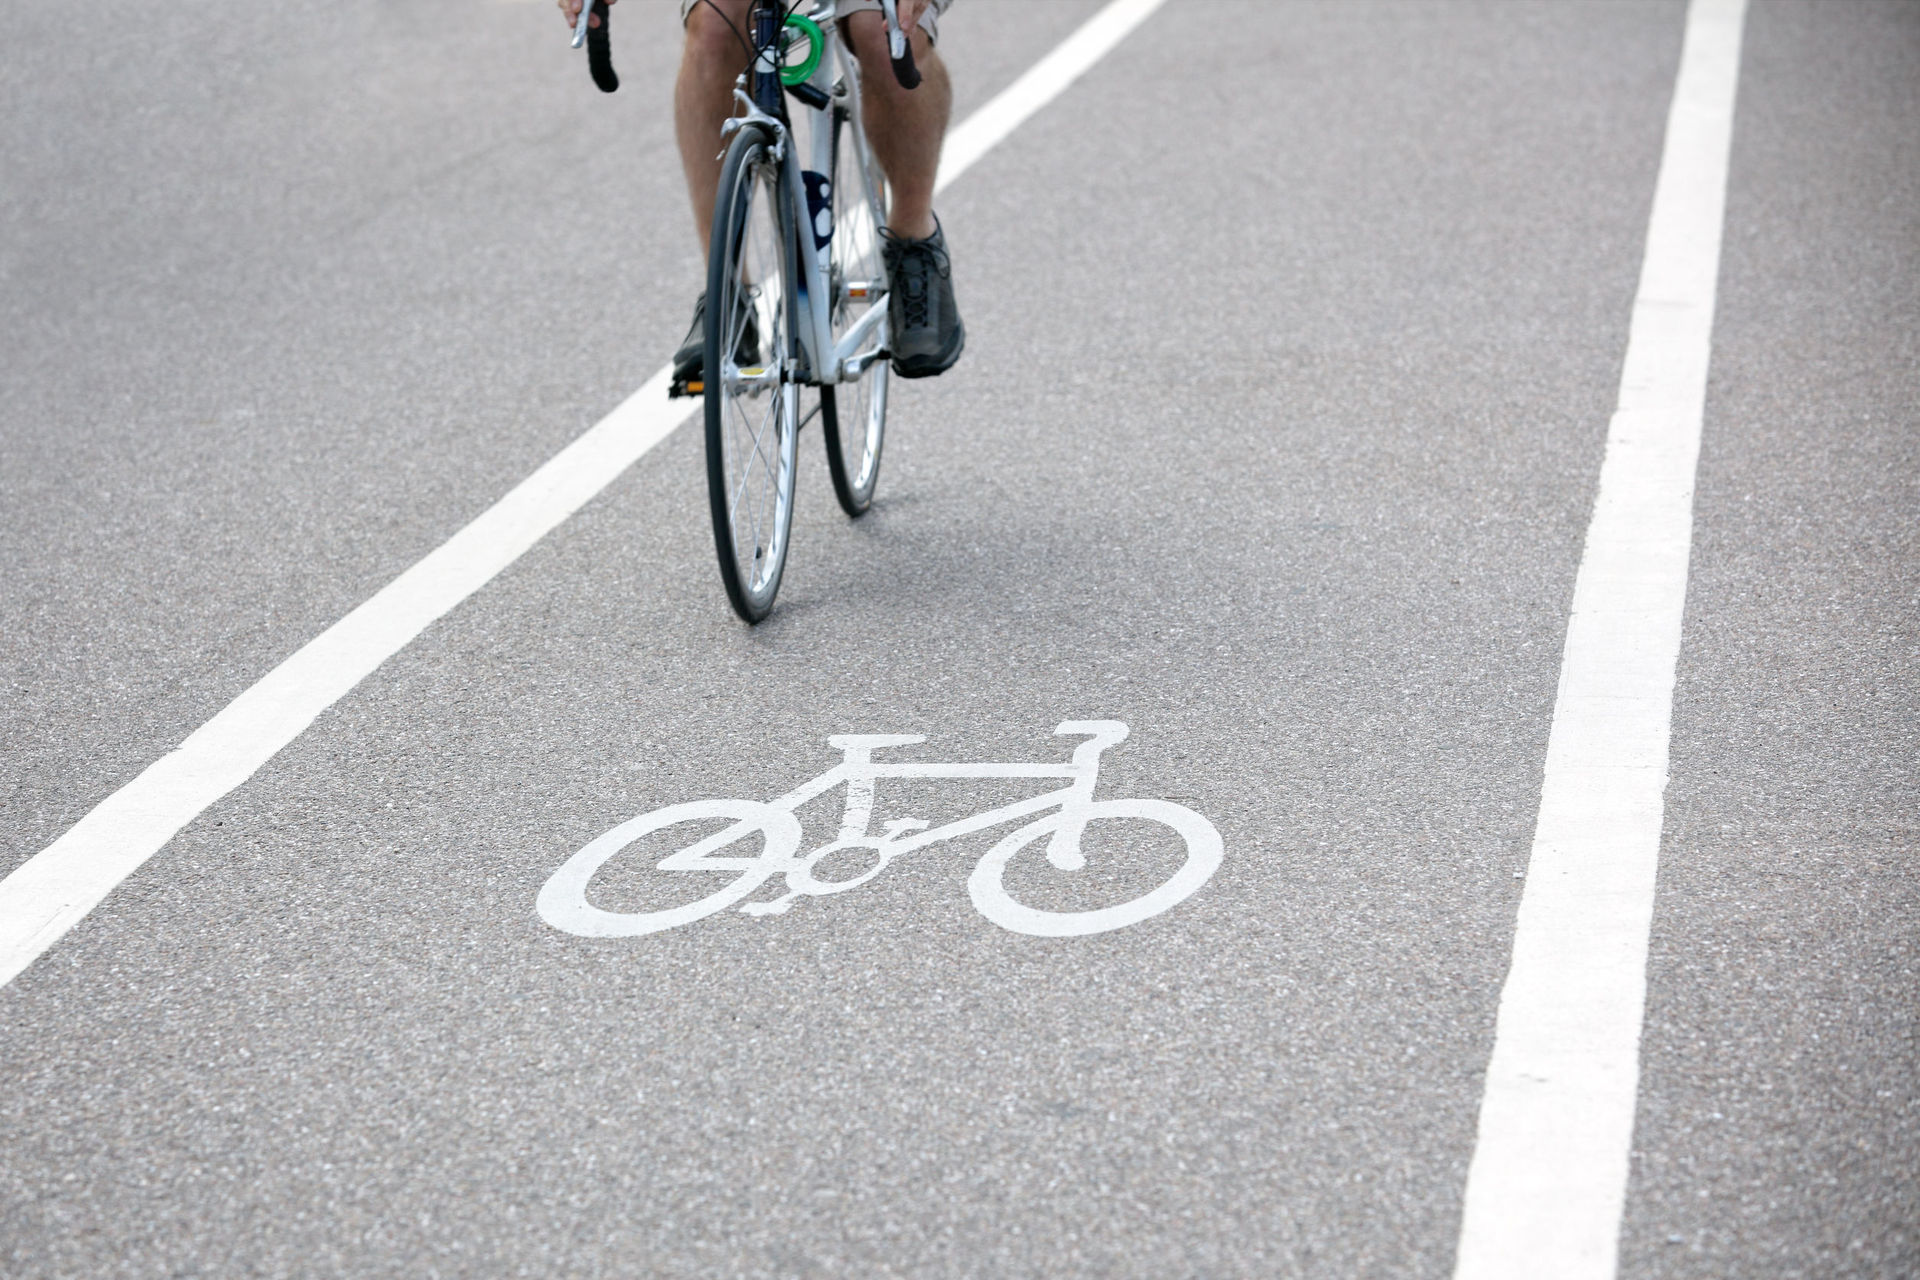 National wants to fine cyclists who don't use dedicated cycleways